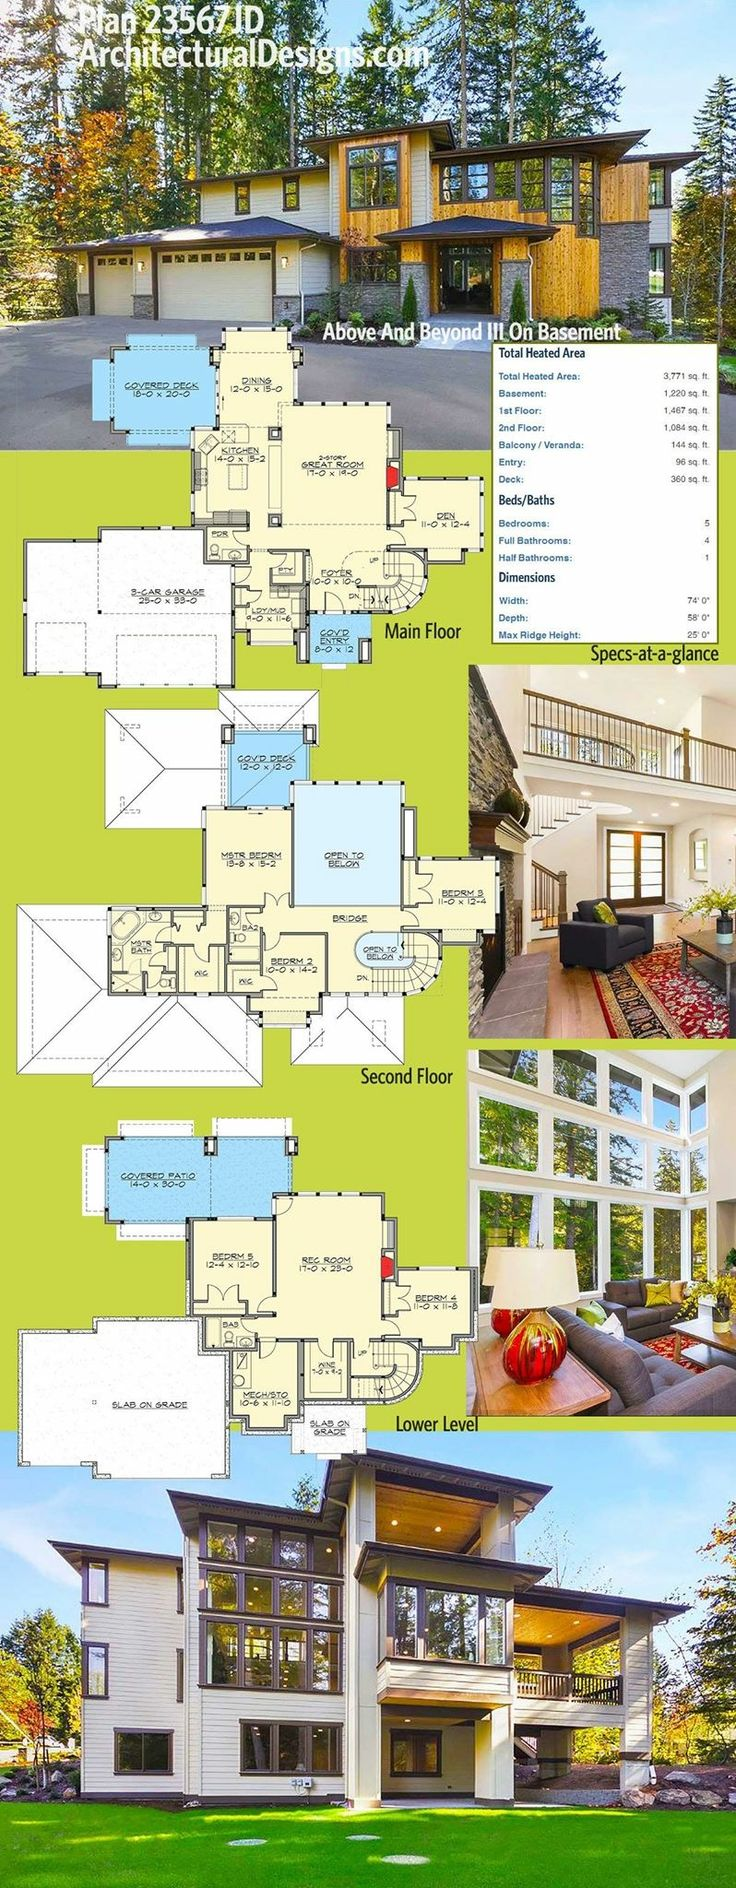 Architectural designs modern house plan 23567jd ready when you are where do you want to